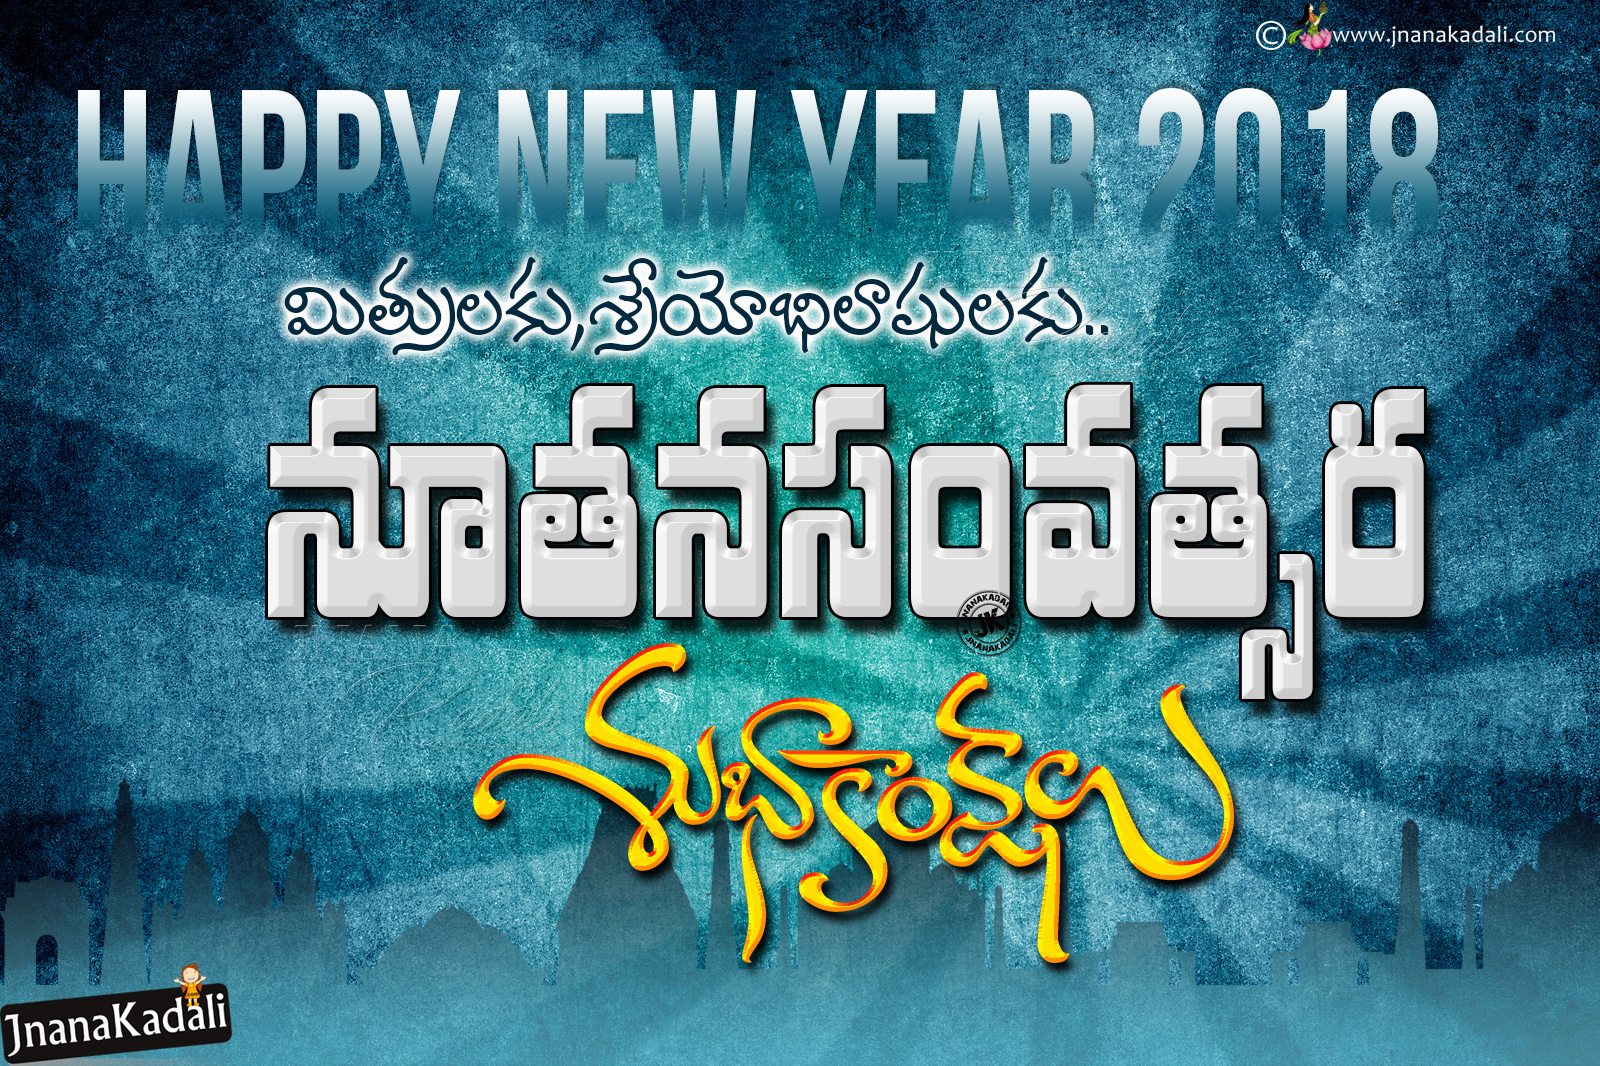 Happy New Year Greetings With Vector Images In Telugu Jnana Kadali